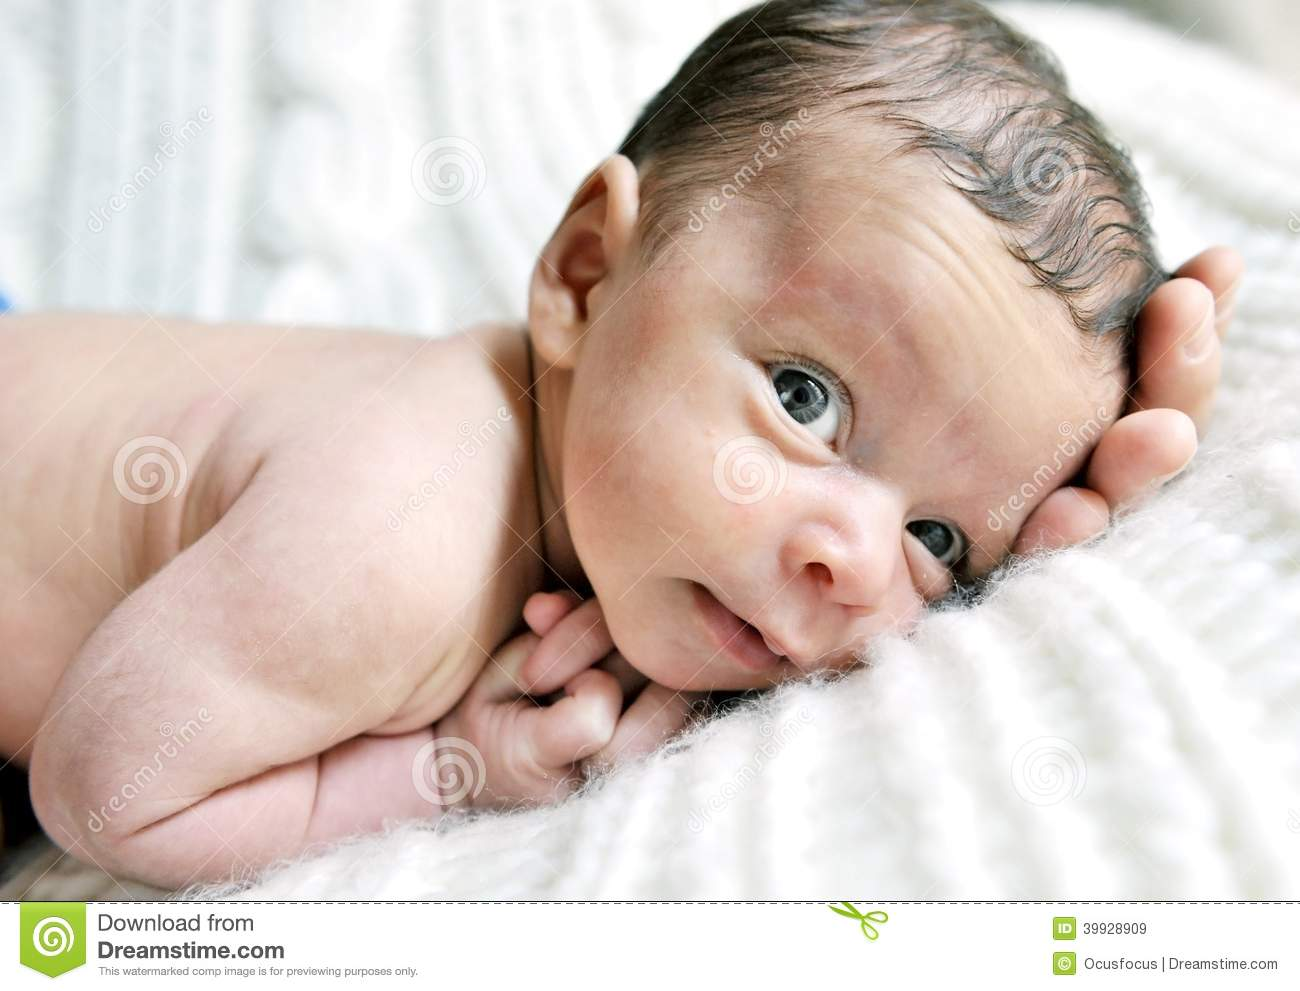 Beautiful little newborn baby in sweet face expression